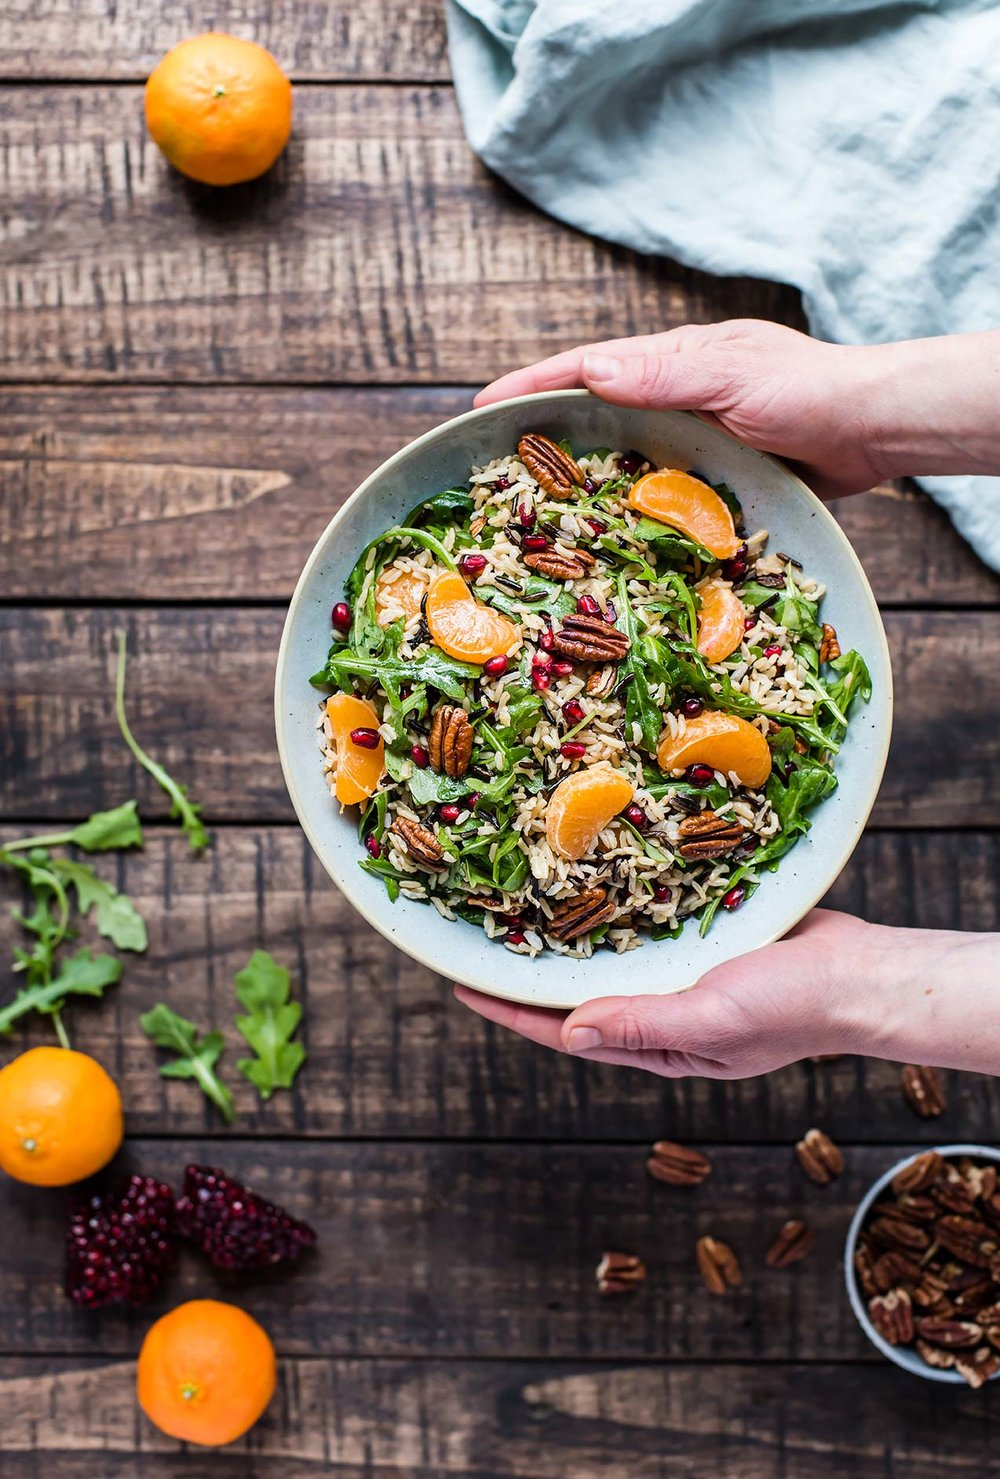 Wild Rice Salad with Pomegranate & Satsuma Mandarins from Foraged Dish